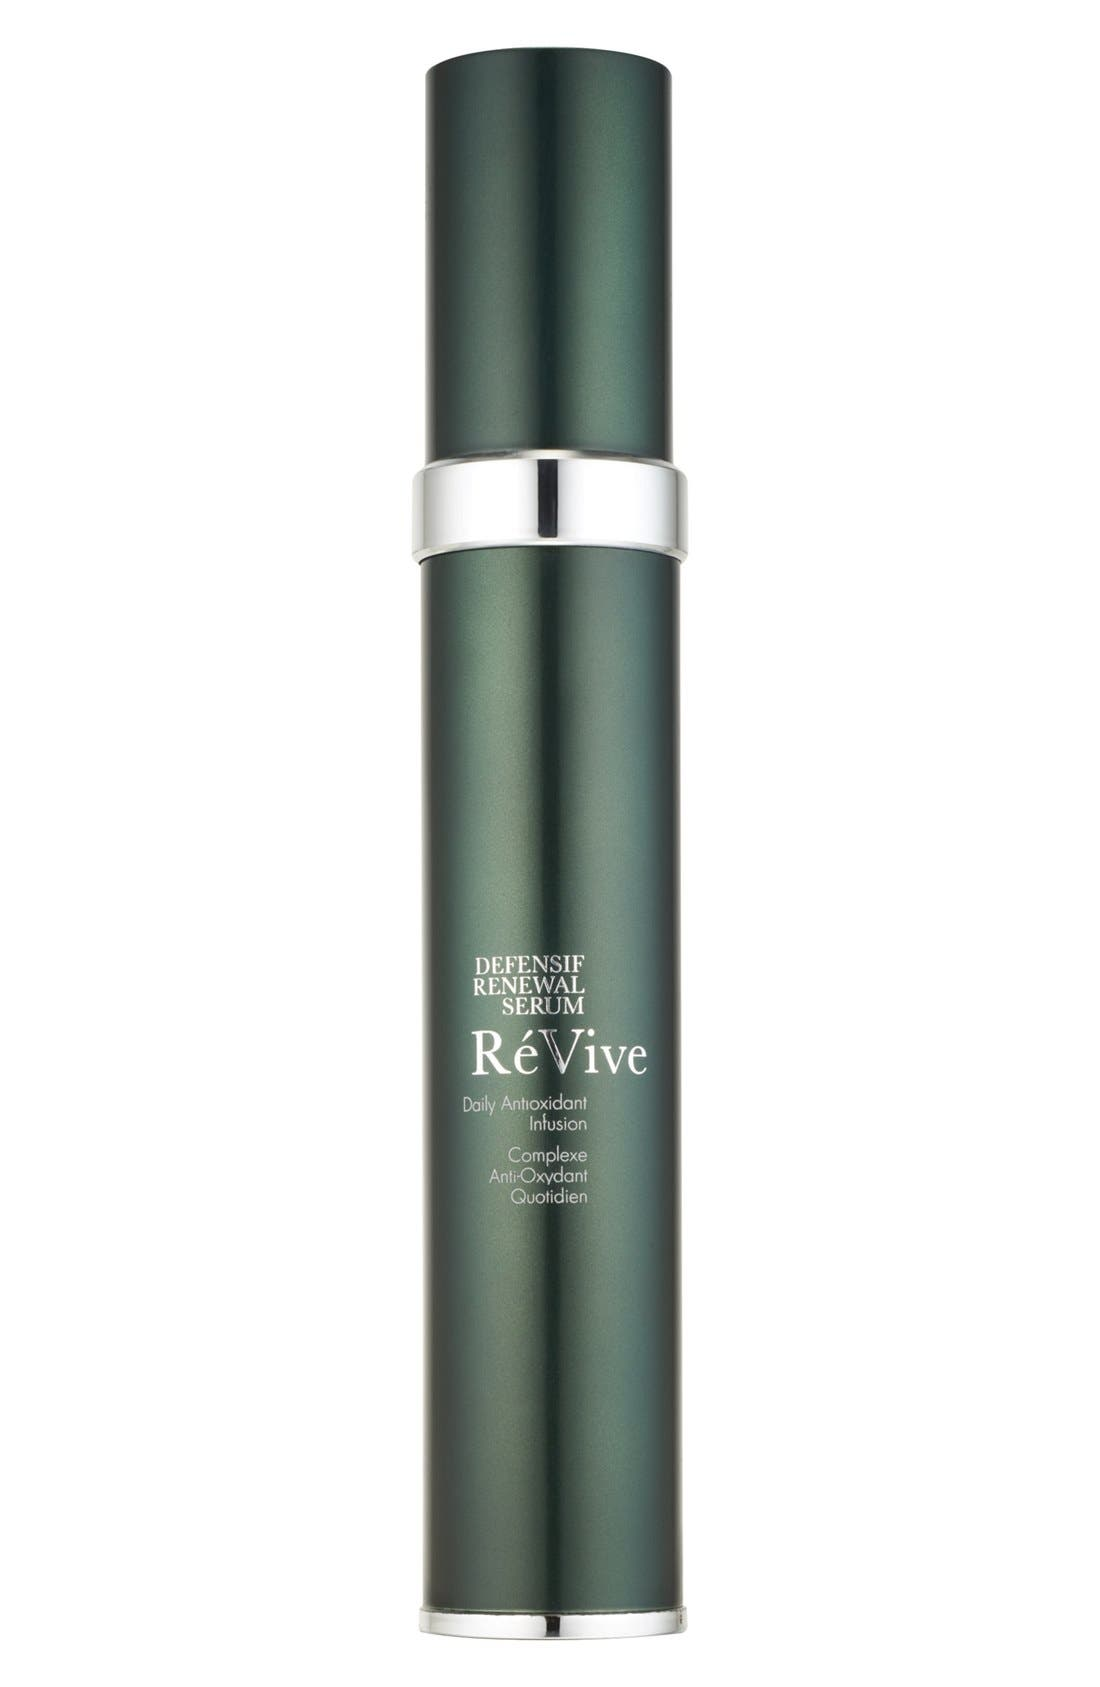 RéVive® Defensif Renewal Serum